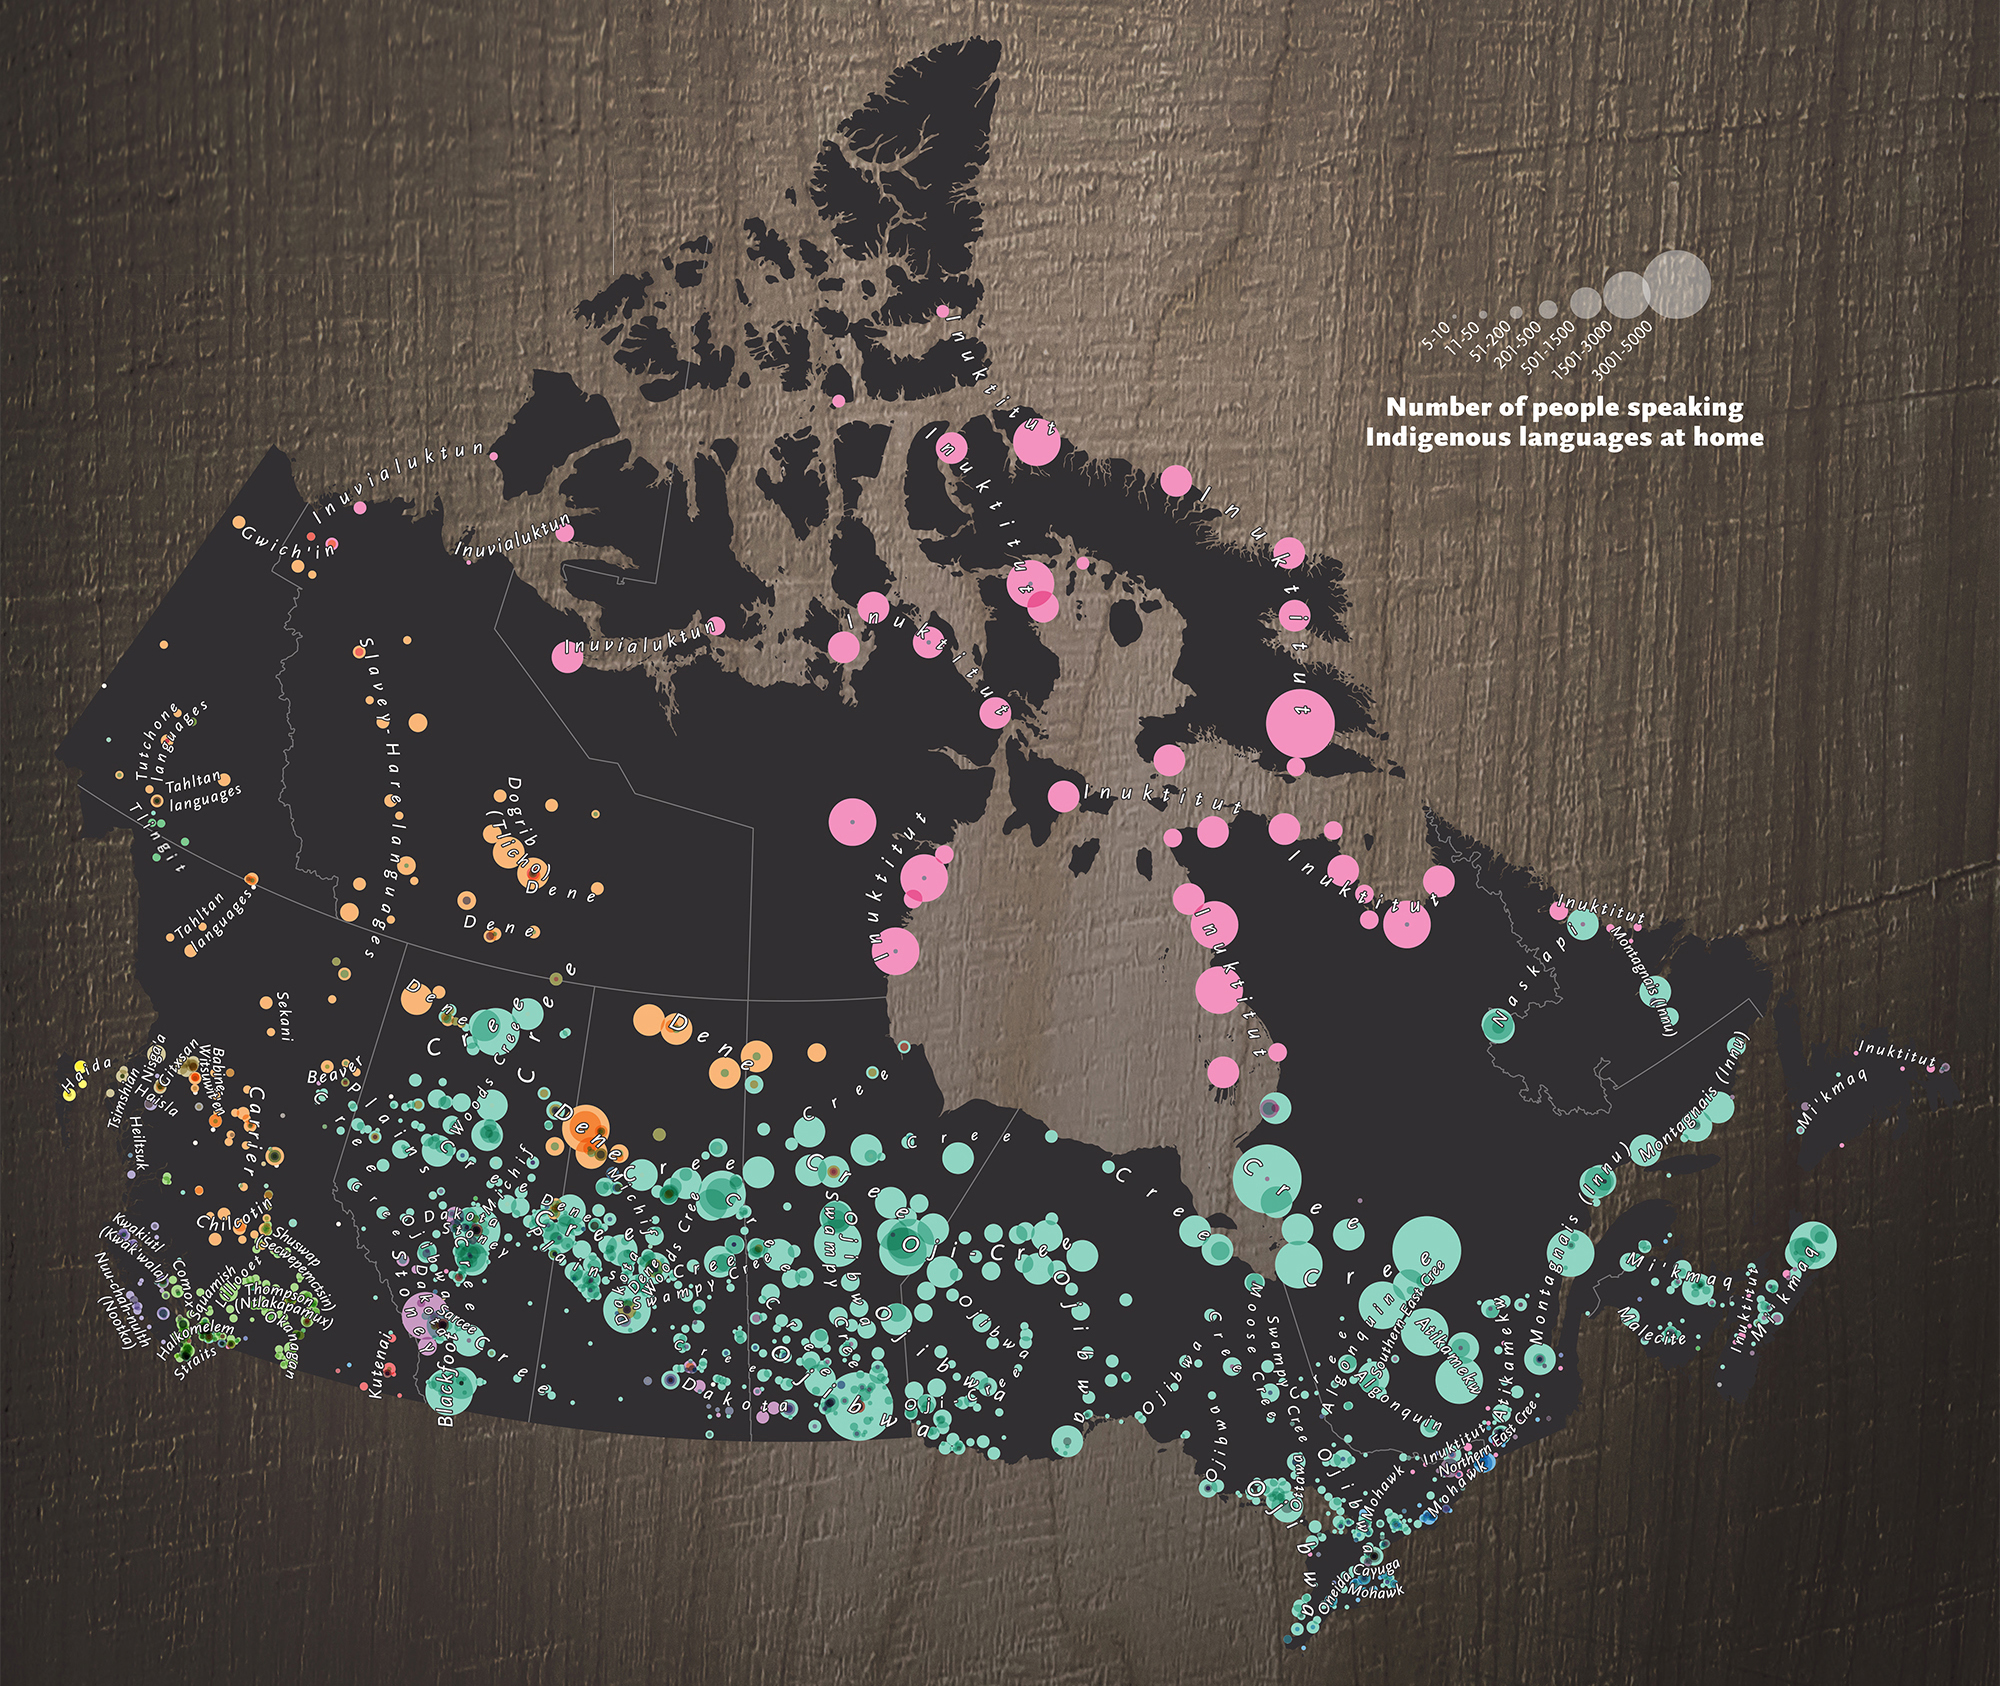 Aboriginal Languages In Canada Map Mapping Indigenous languages in Canada | Canadian Geographic